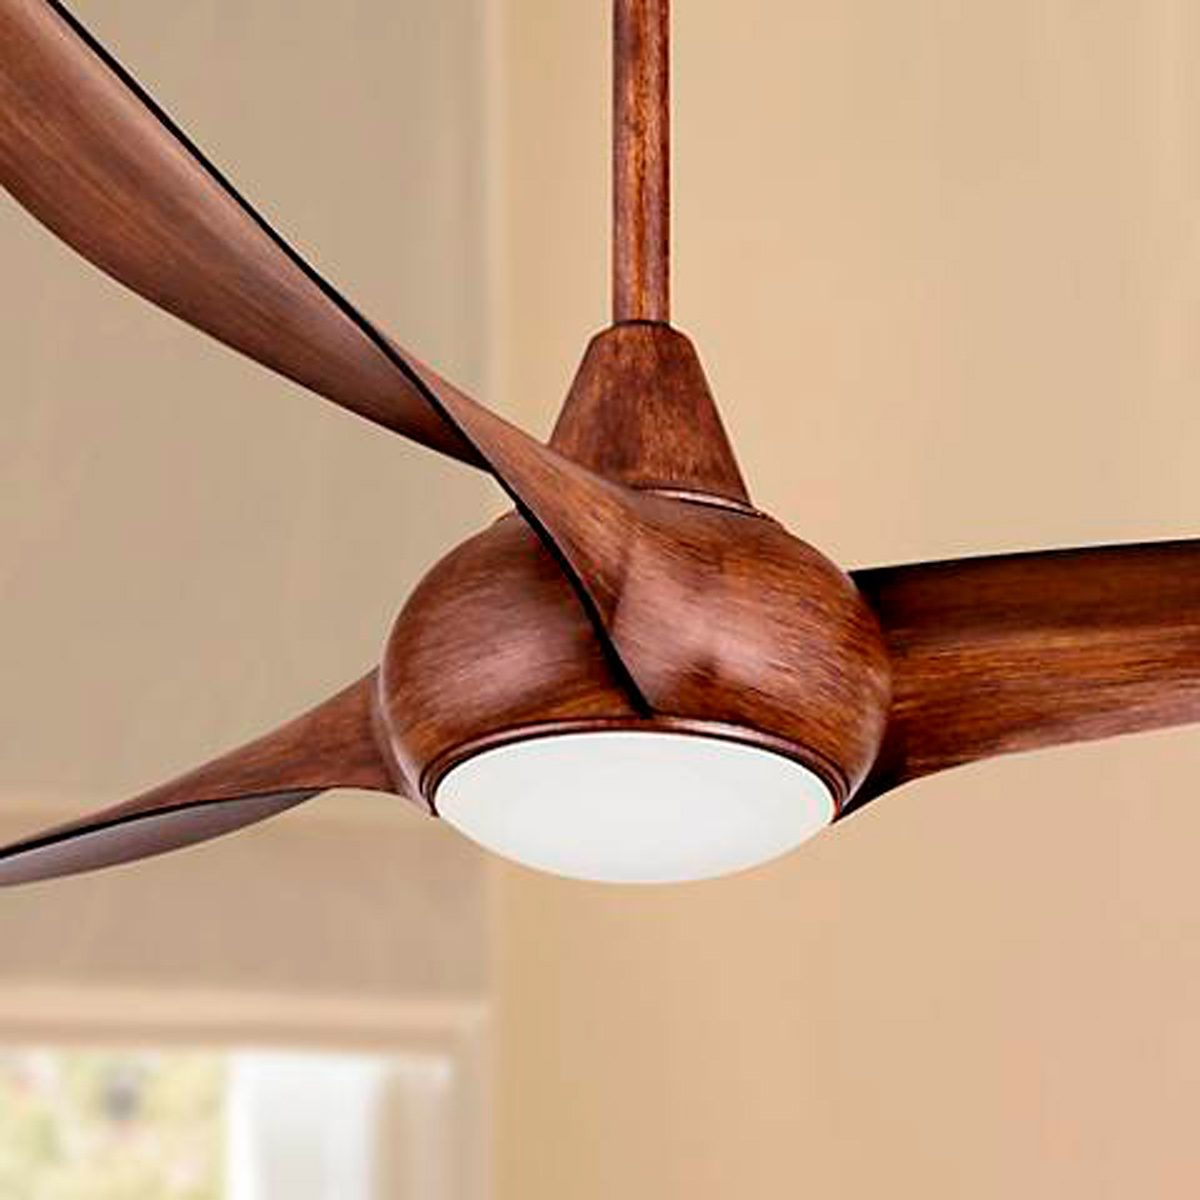 11 Modern Ceiling Fans to Keep Your House Cool This Summer